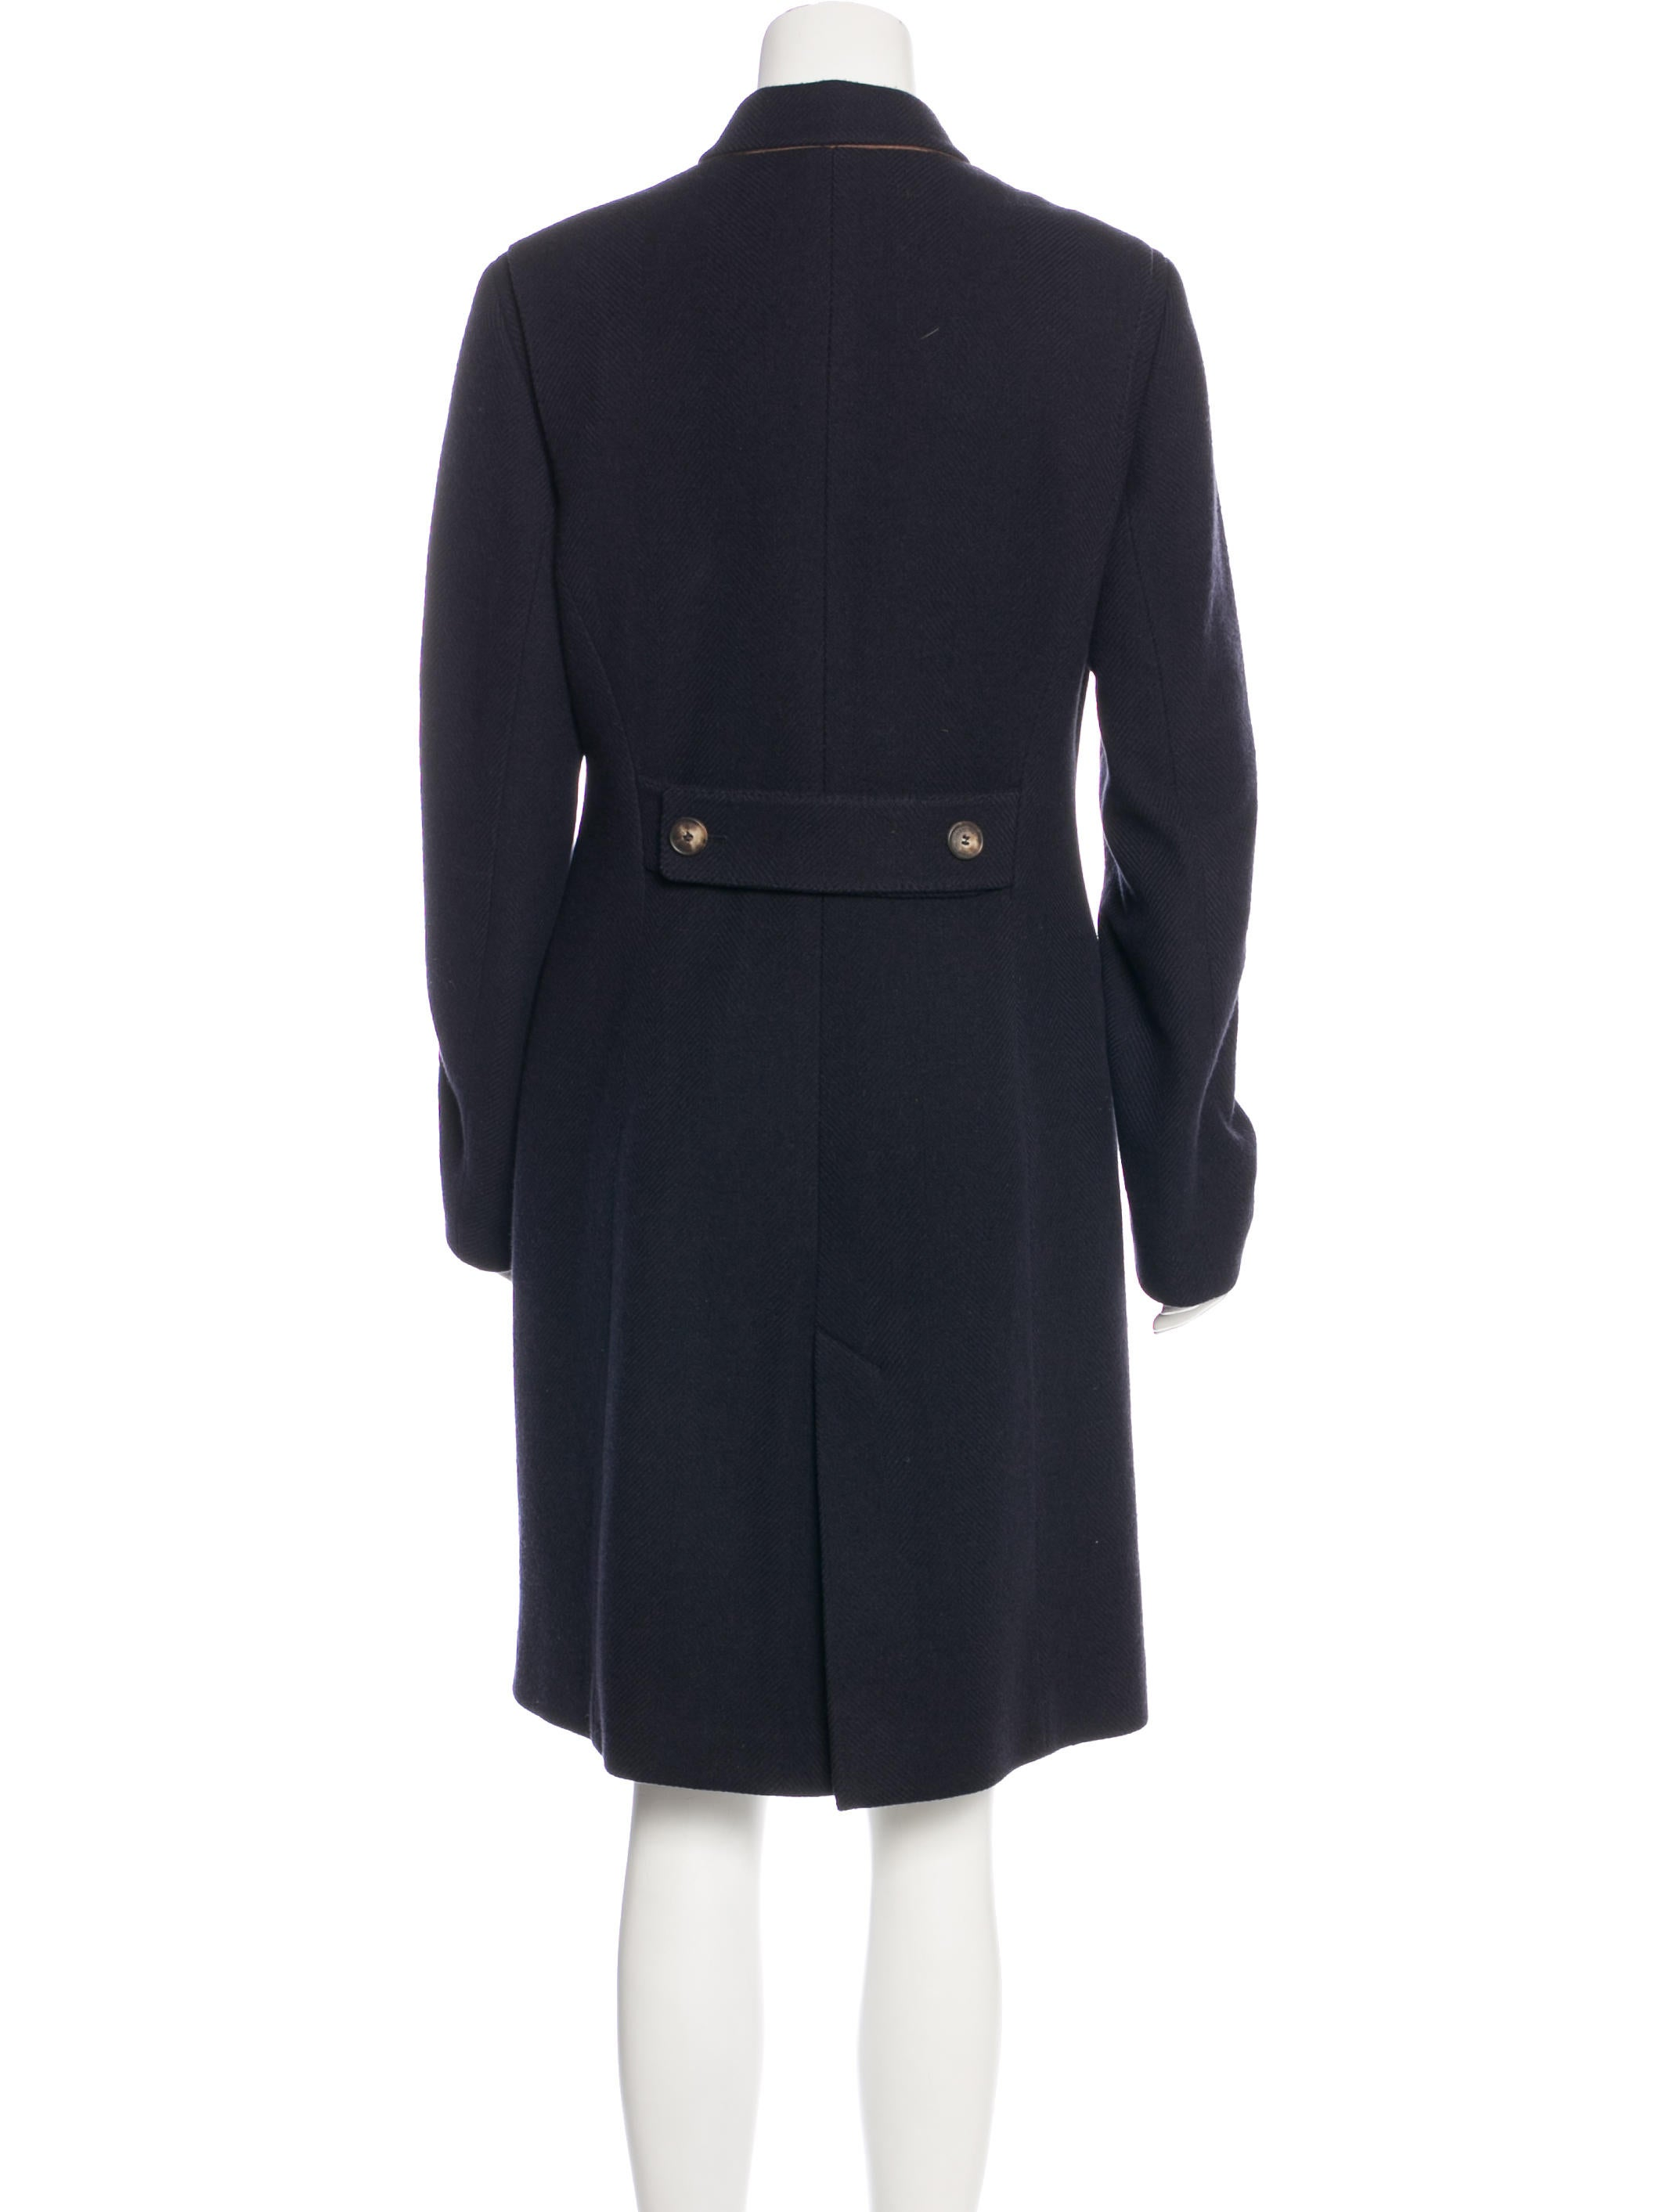 Find cashmere sweater coat at ShopStyle. Shop the latest collection of cashmere sweater coat from the most popular stores - all in one place.